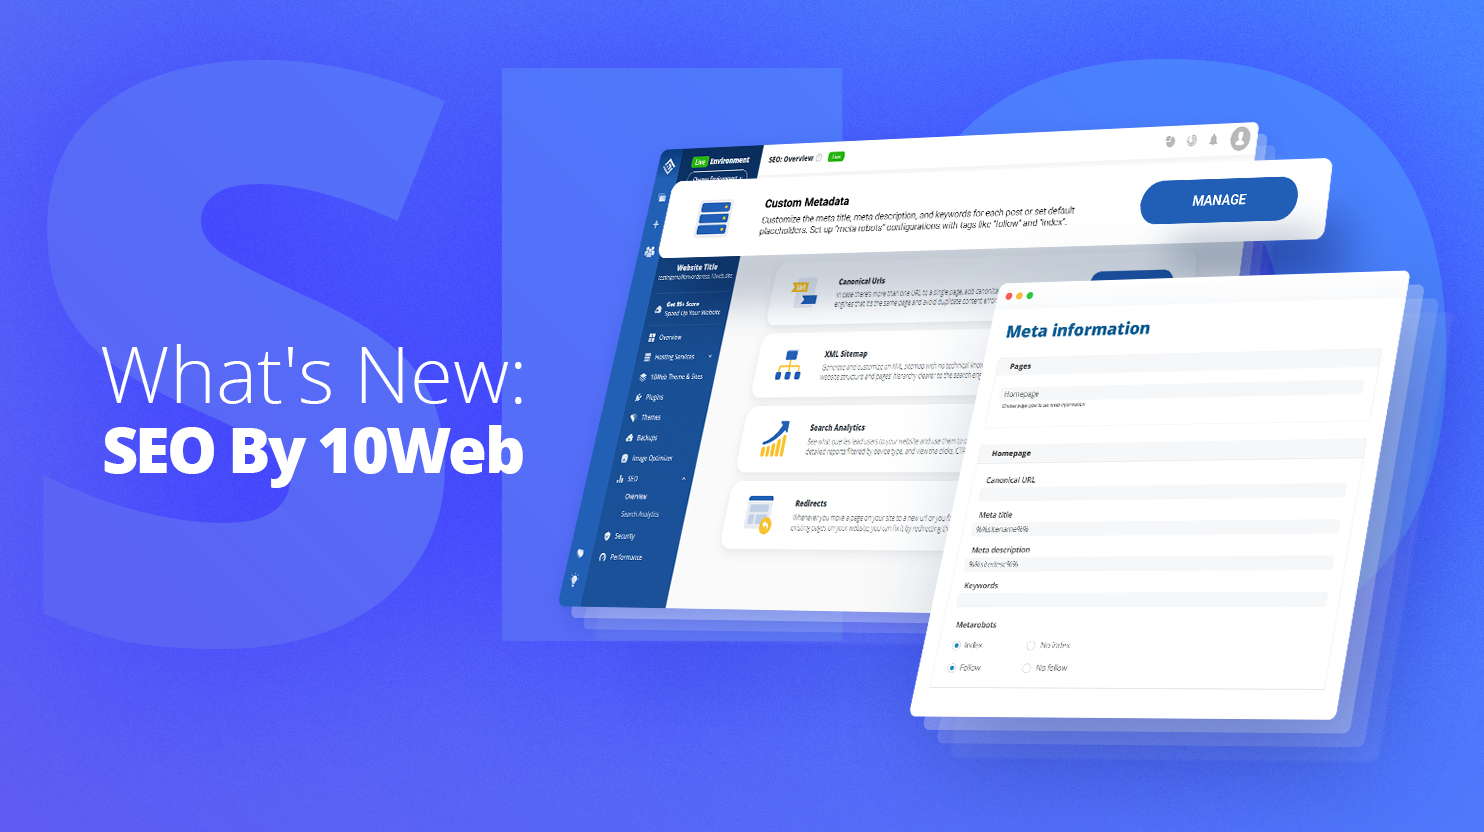 SEO by 10Web updated